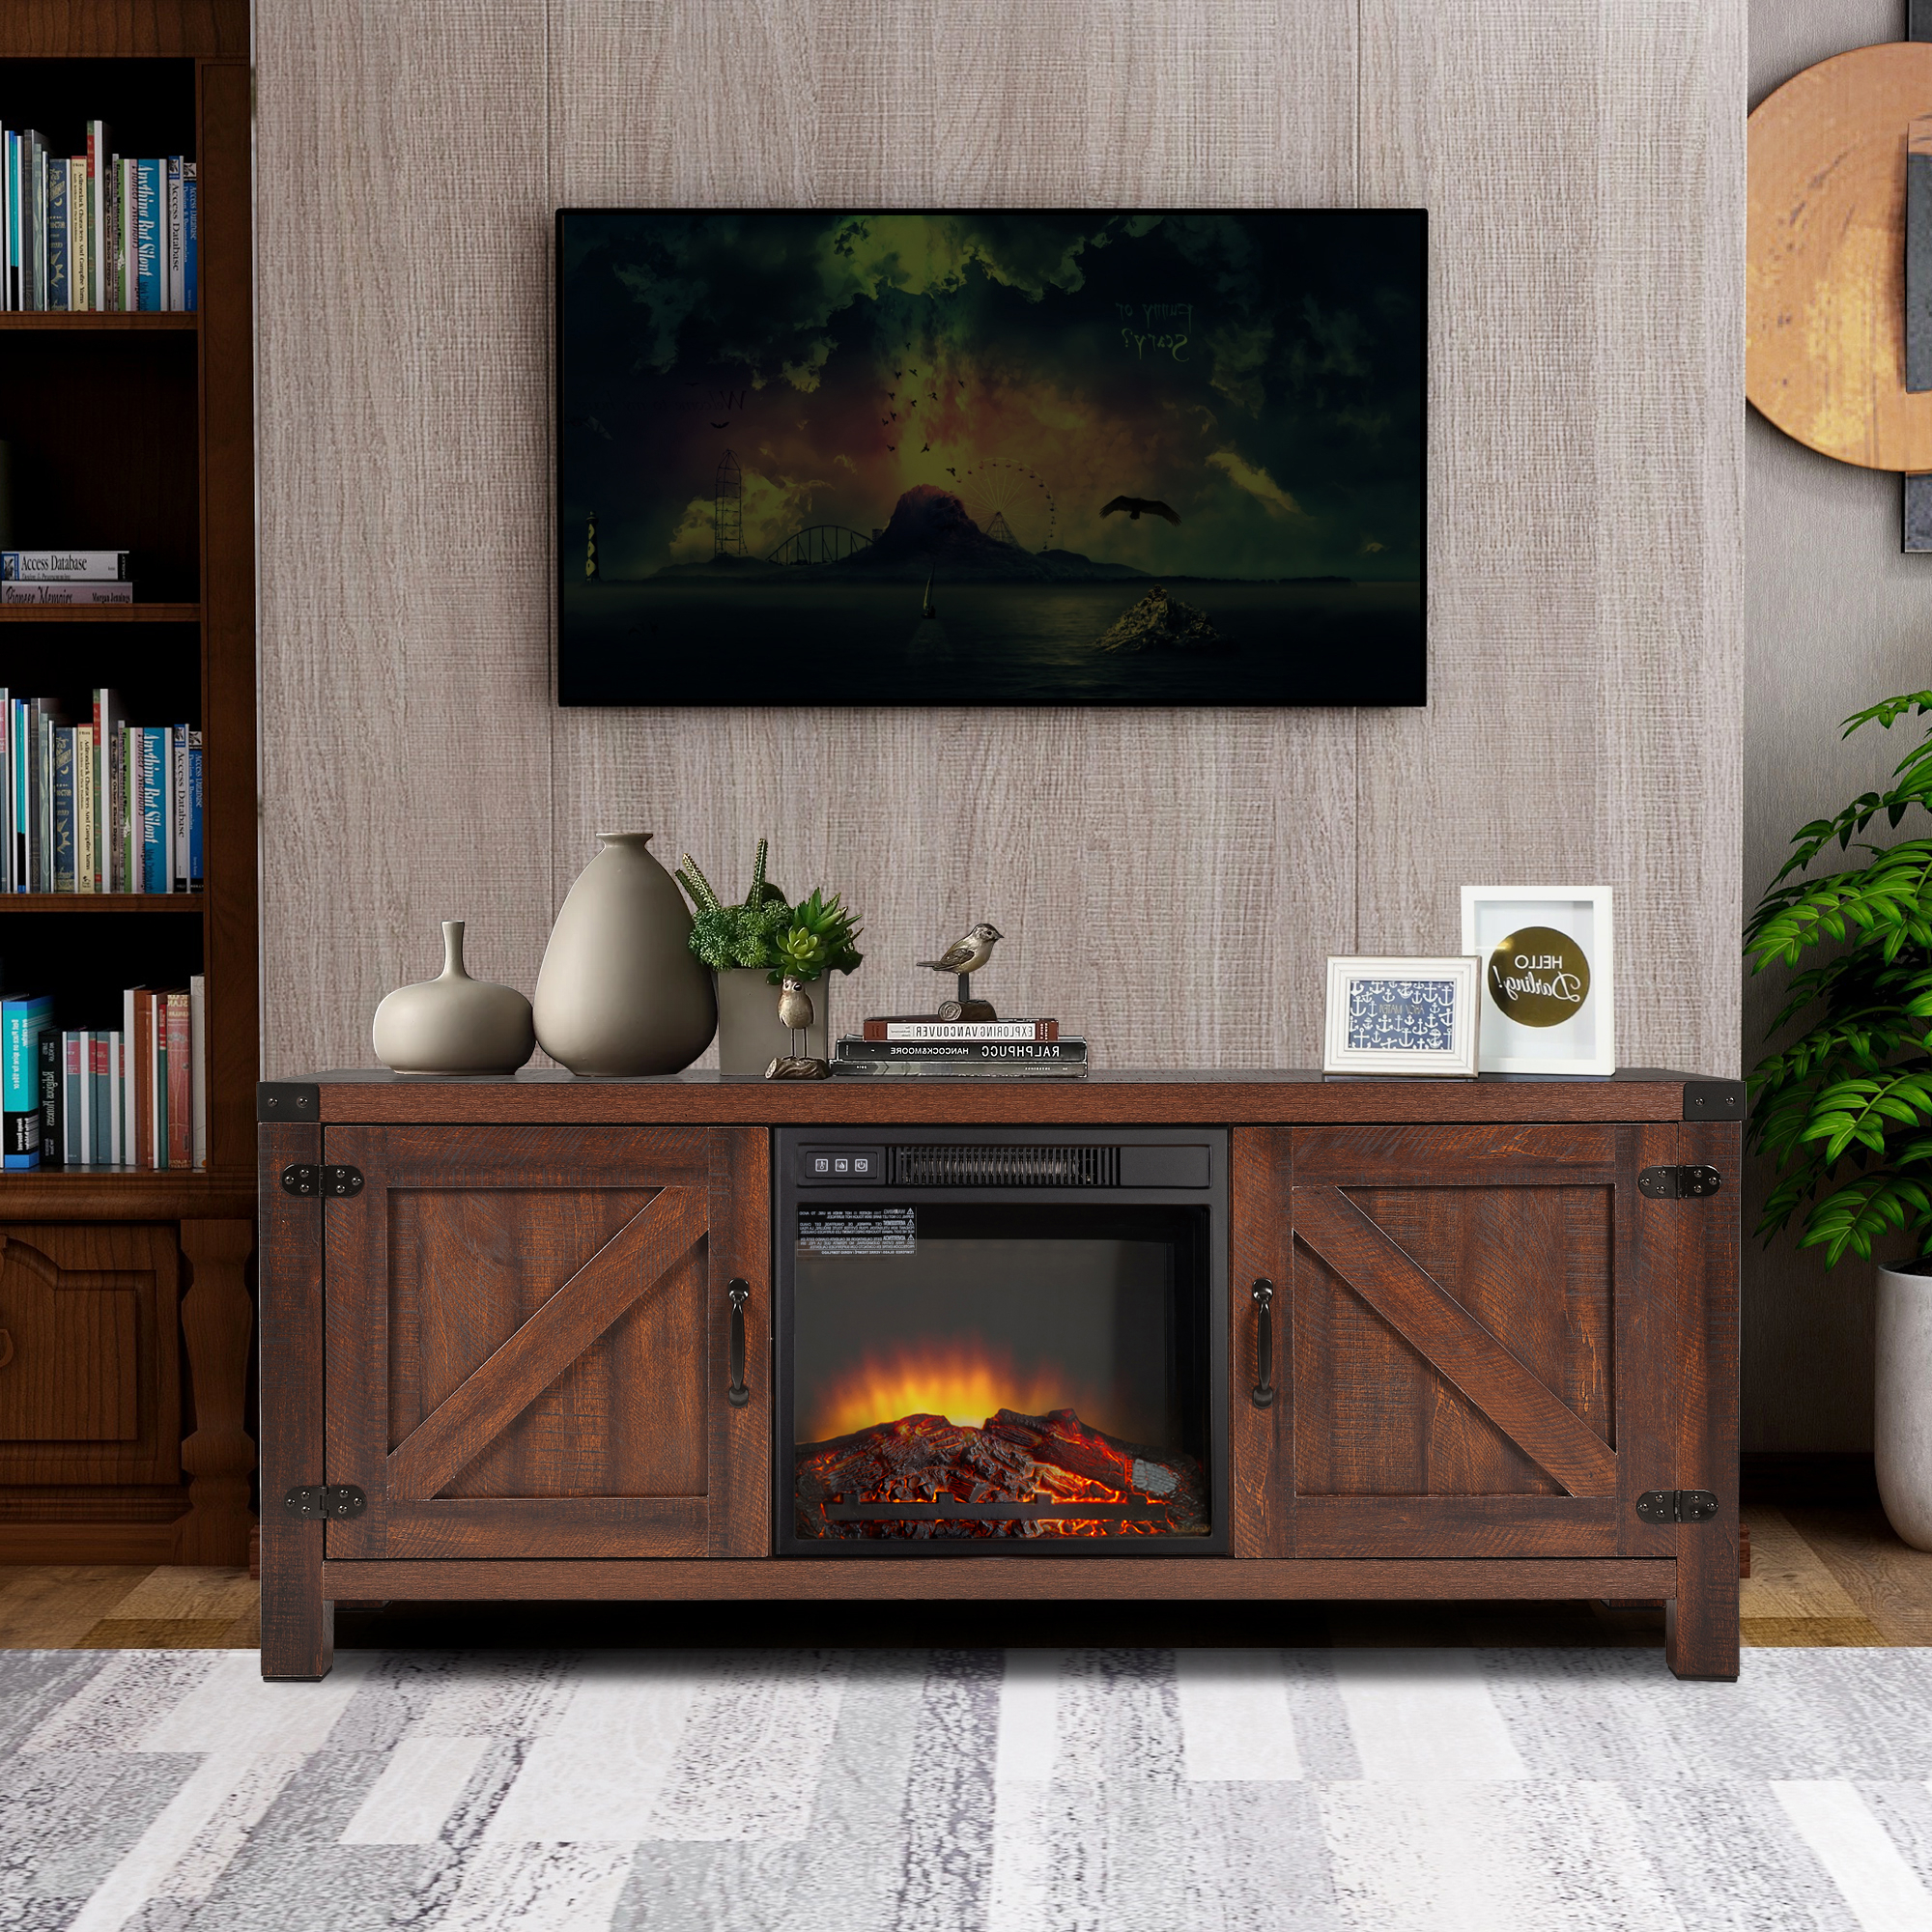 Fireplace Tv Stand, 58 Inch Wood Fireplace Stand, Modern Regarding Modern Farmhouse Tv Stands (View 2 of 31)